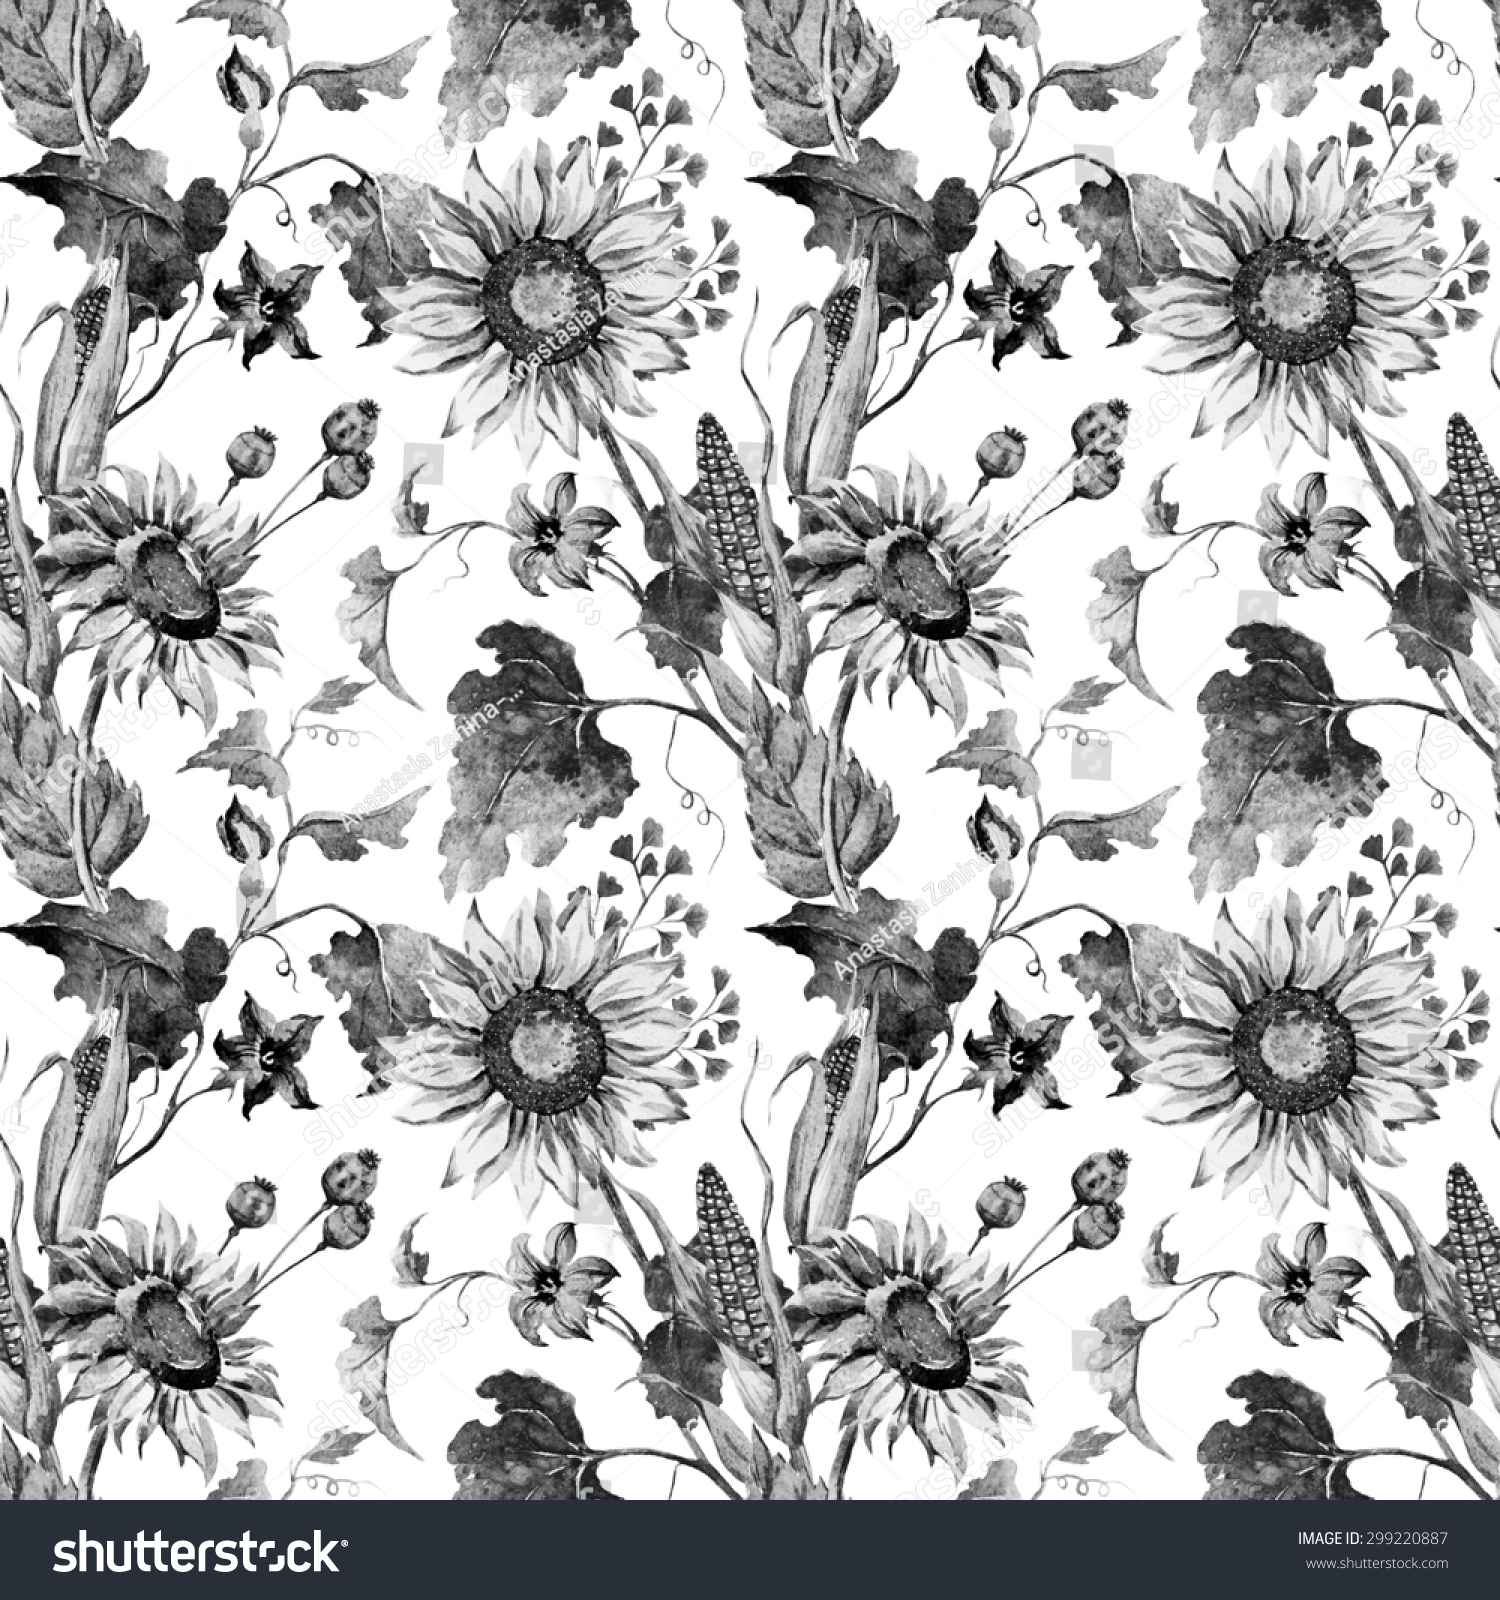 Watercolor Black And White Autumn Flowers Wallpaper Sunflower Corn Pumpkin Leaves Seamless Pattern